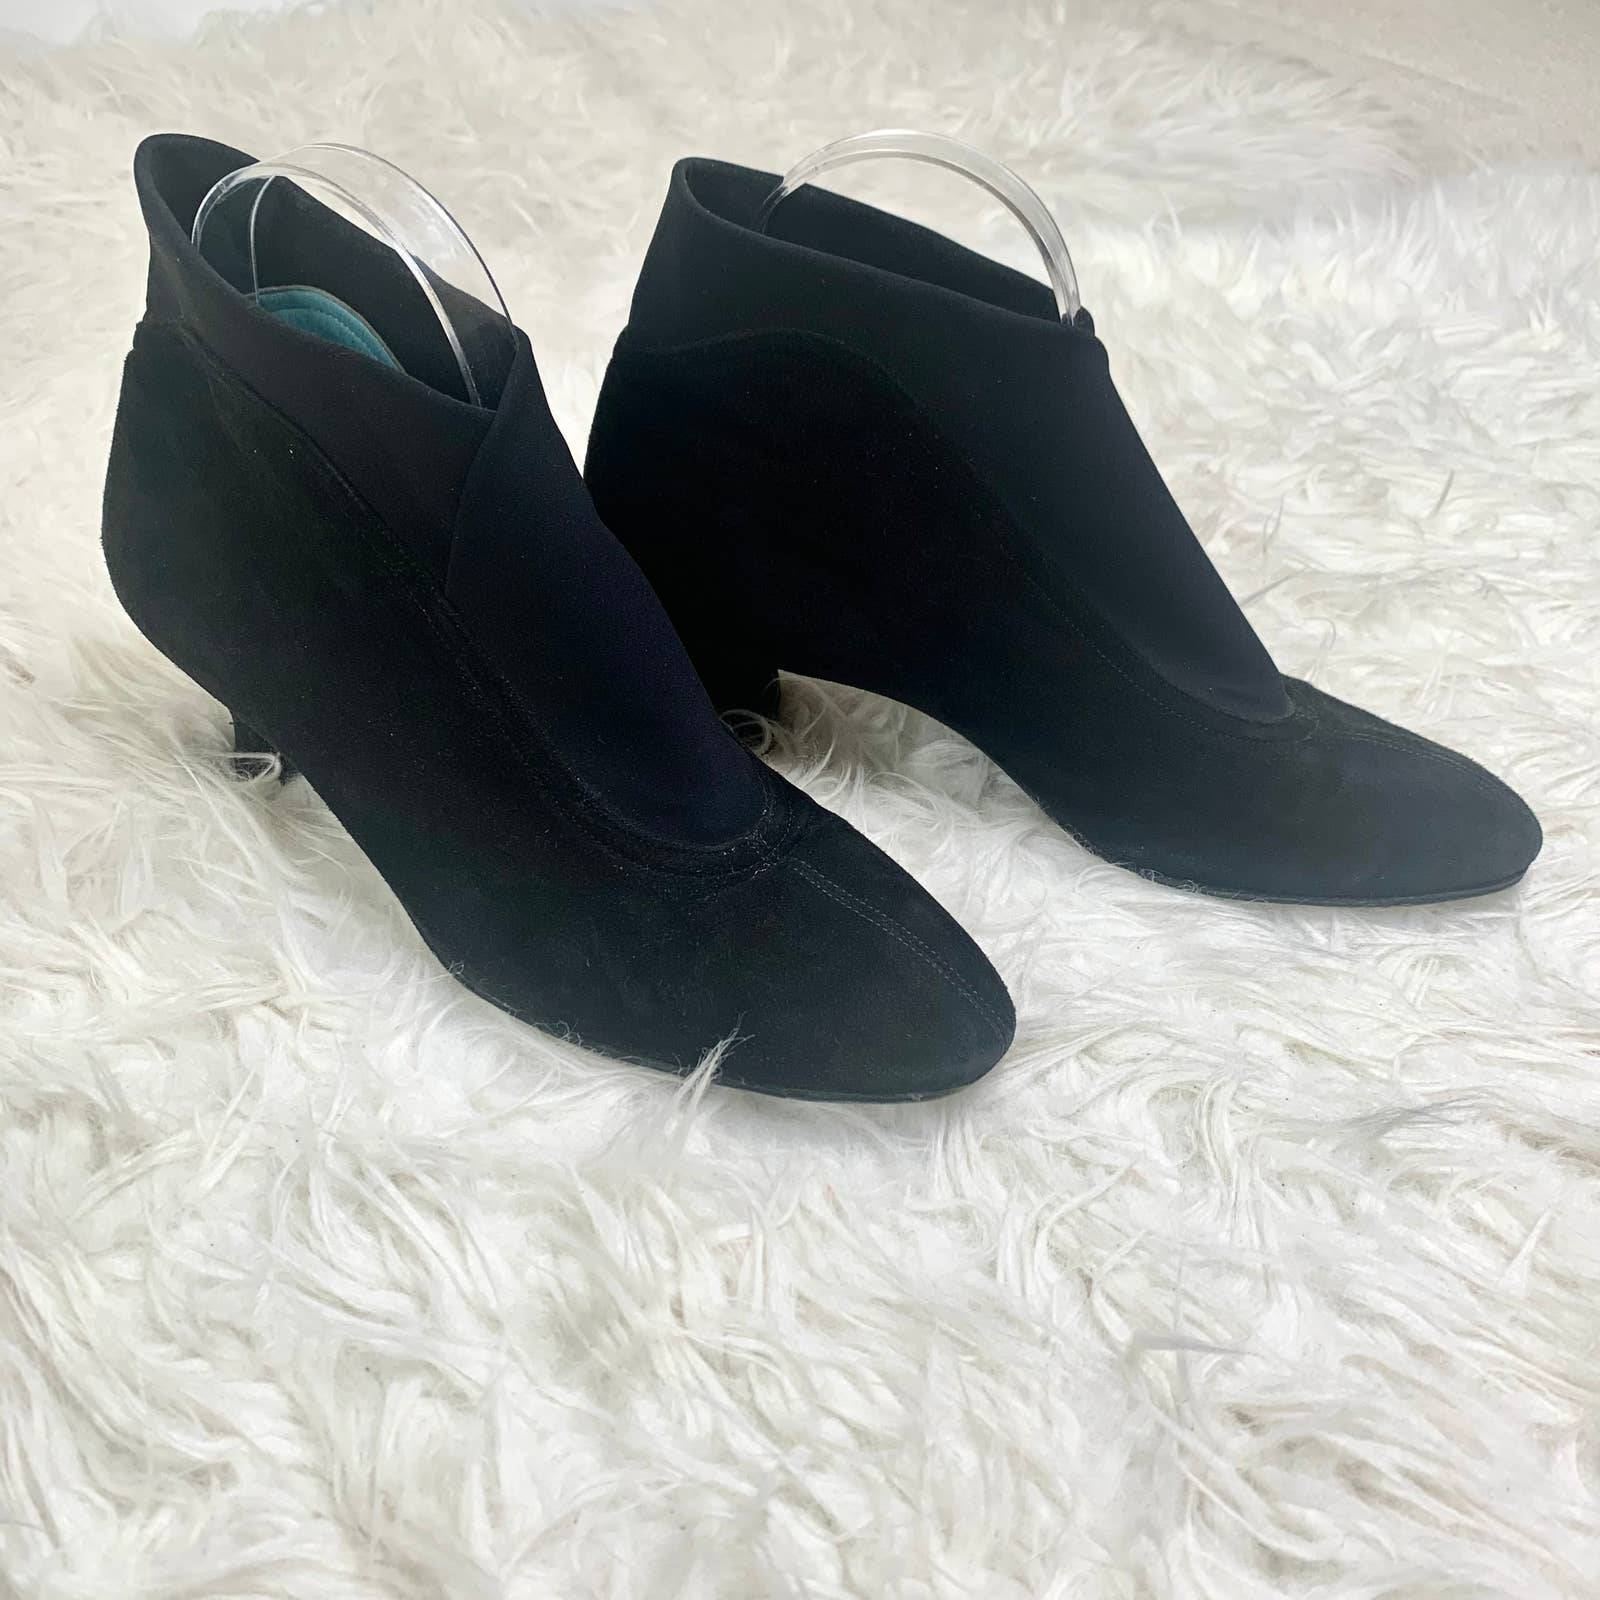 THIERRY RABOTIN Ankle Boot Black Leather